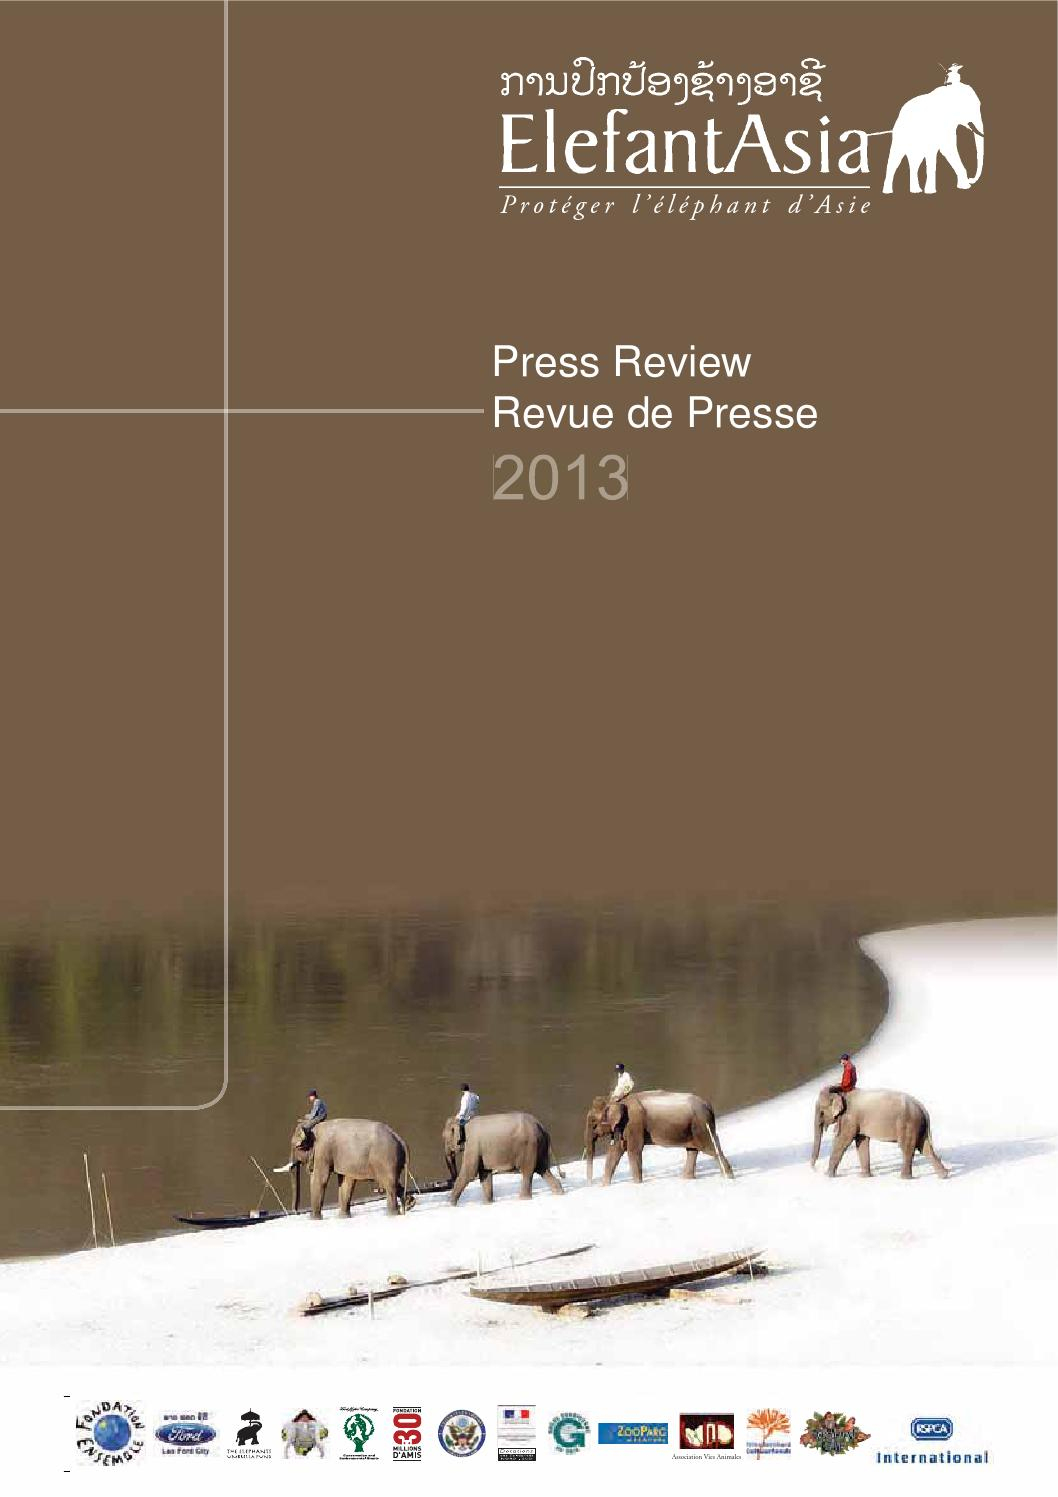 Full Press Review 2013 By Sebastien Duffillot - Issuu dedans Barrissement Elephant